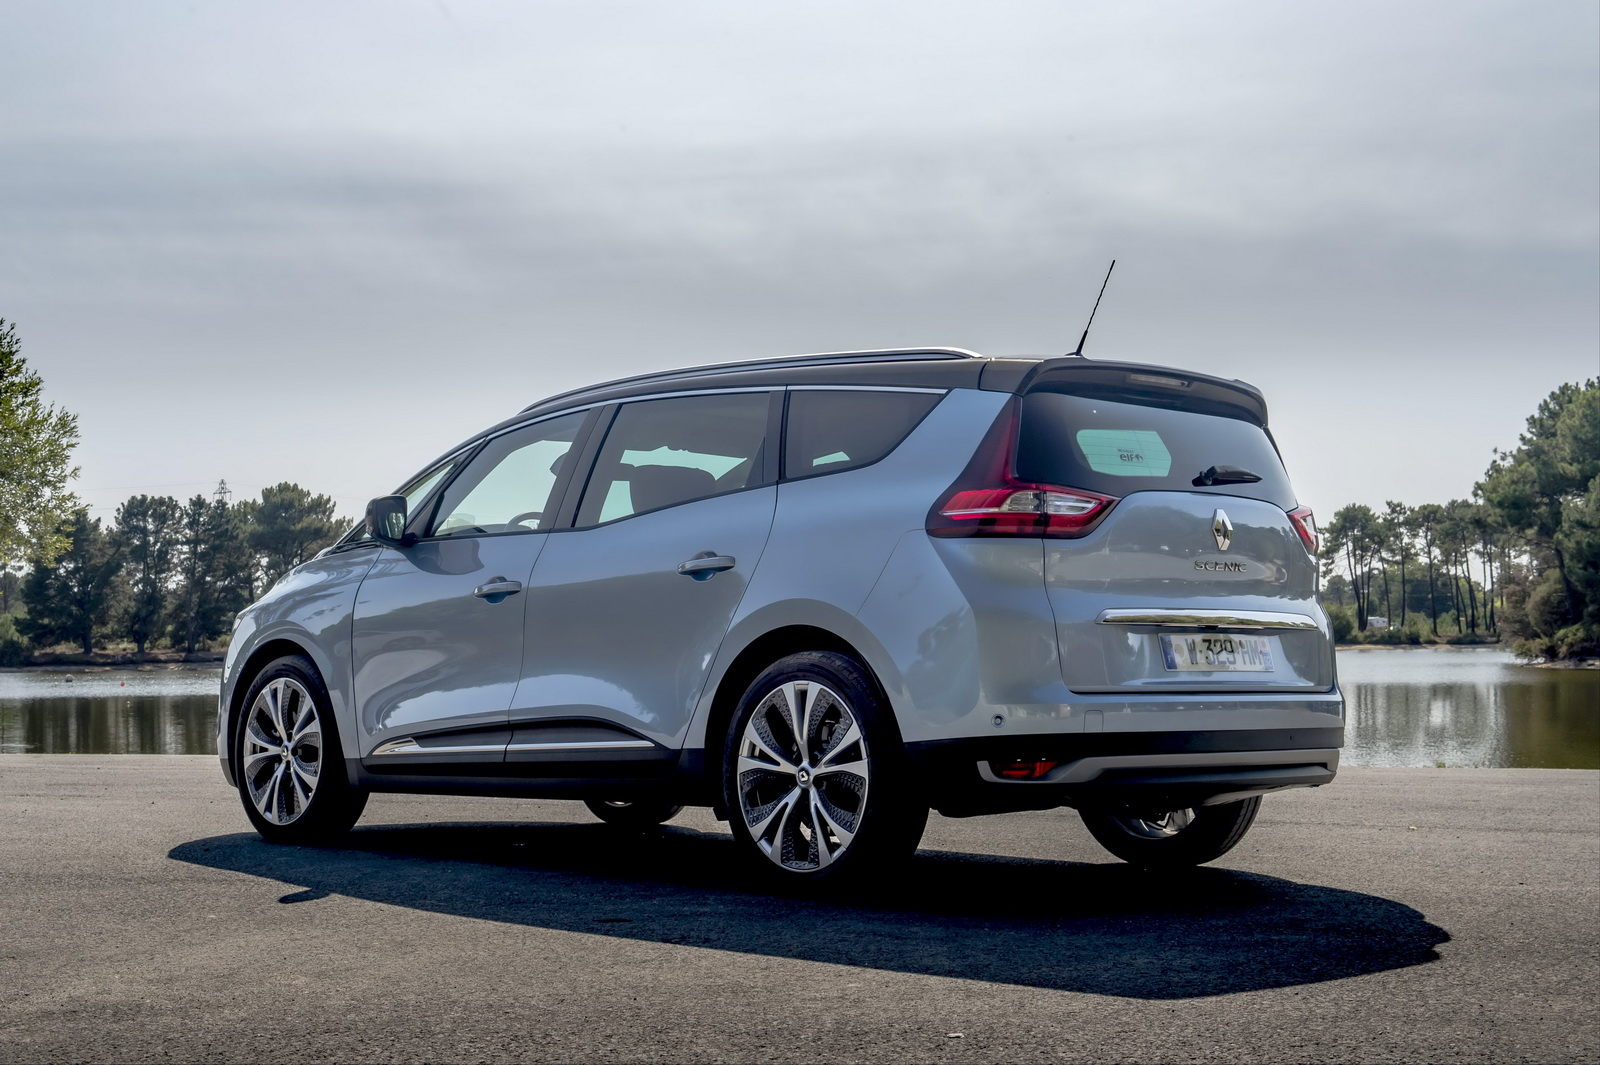 Renault Scenic And Grand Scenic Gain New Renault-Mercedes ...